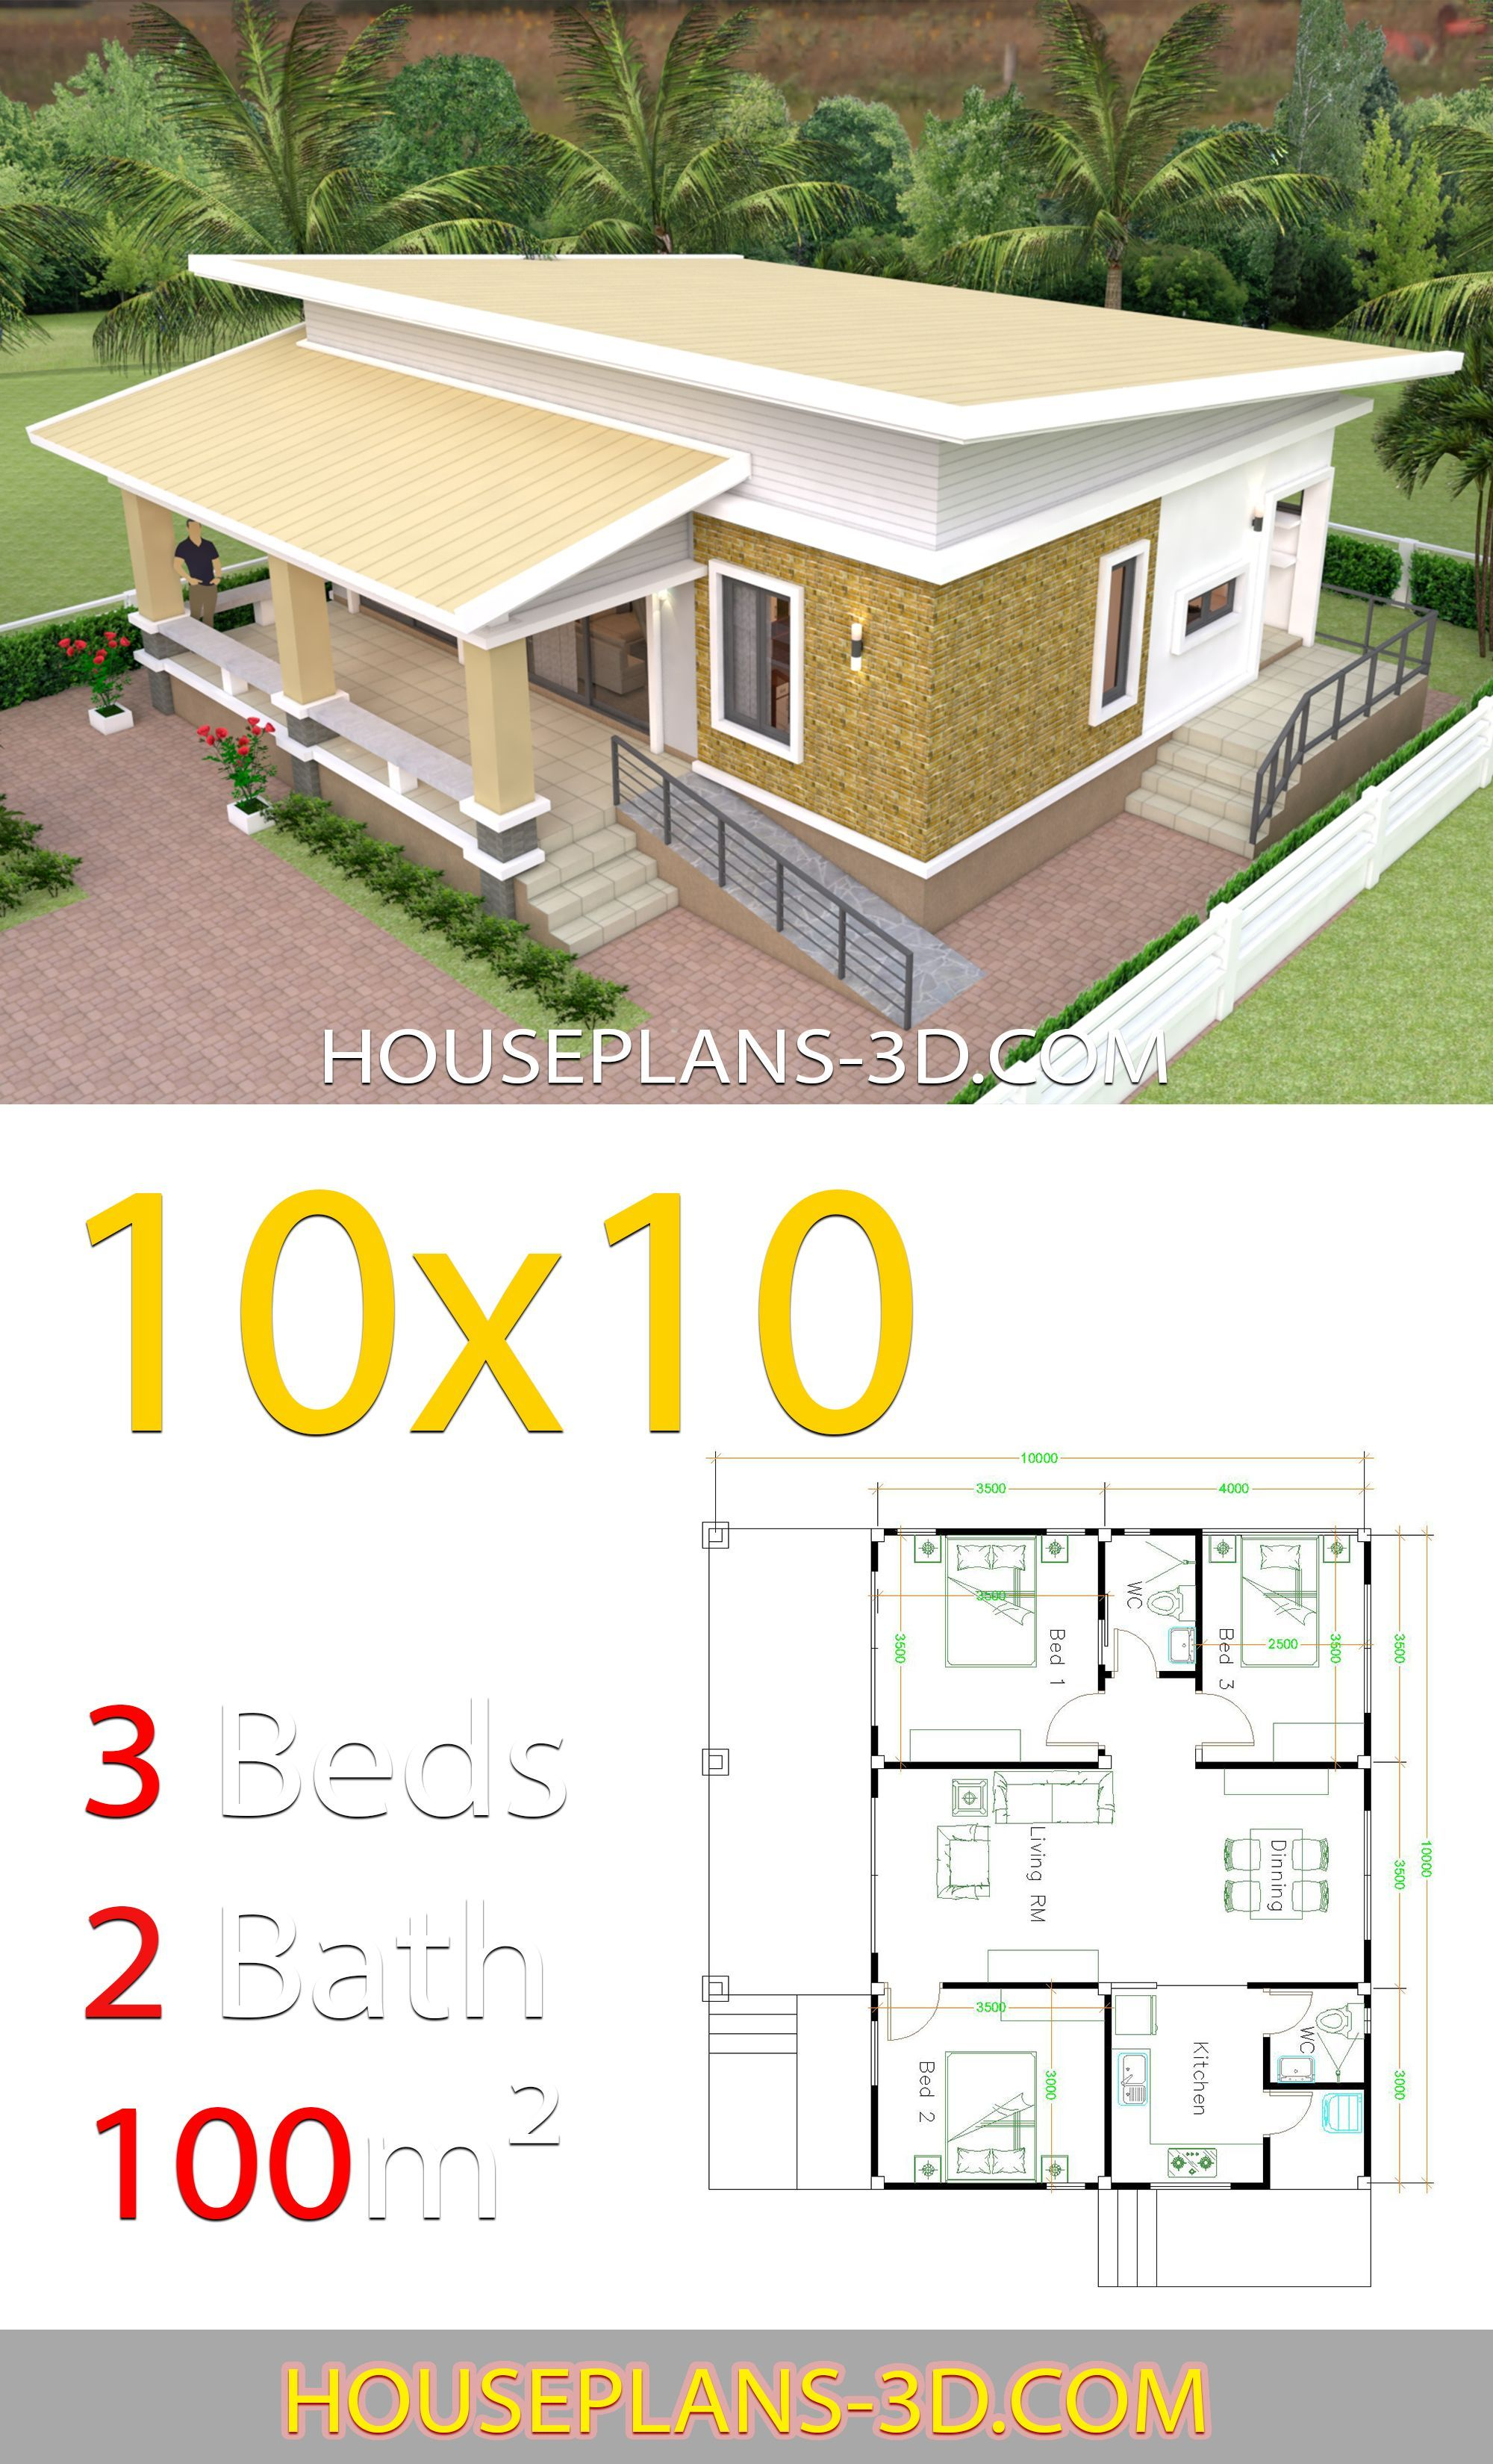 House Design 10x10 With 3 Bedrooms Full Interior House Plans 3d House Plan Gallery House Layouts House Plans